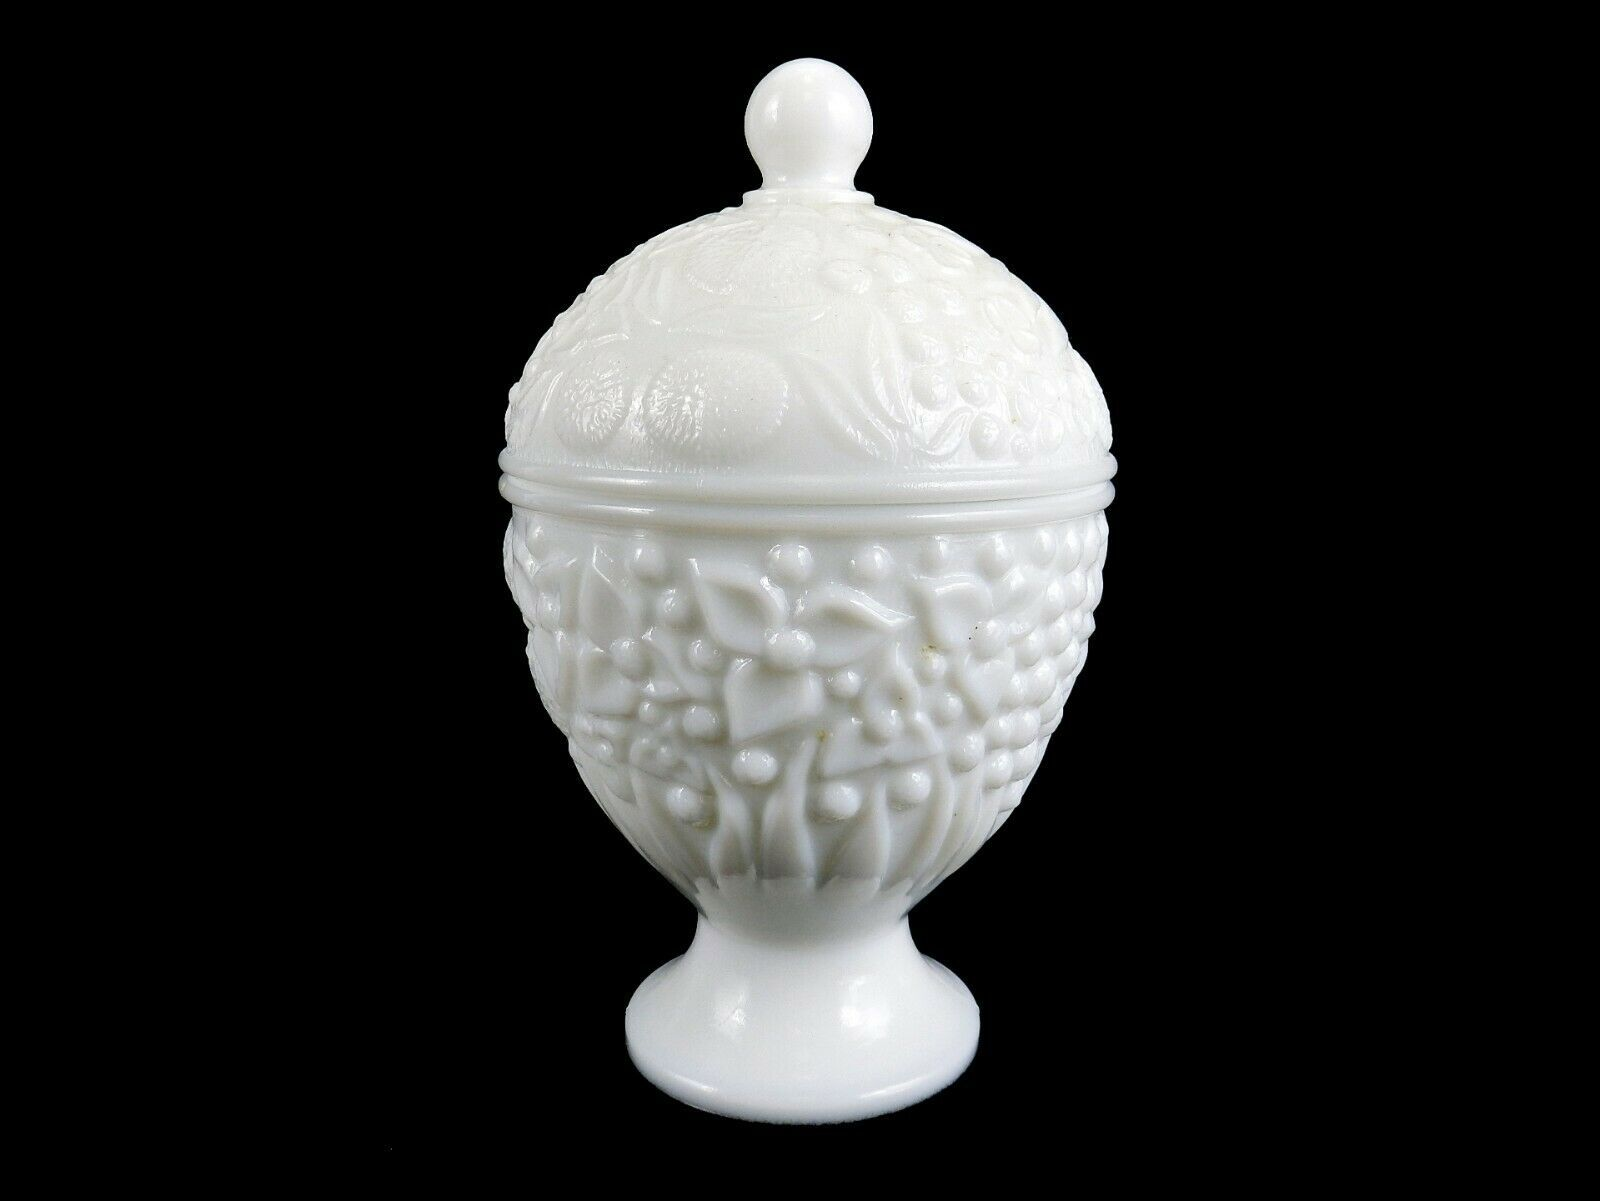 Primary image for Avon Milk Glass Covered Candy Dish #5, Egg Shaped On Pedestal Base, Vintage 60s